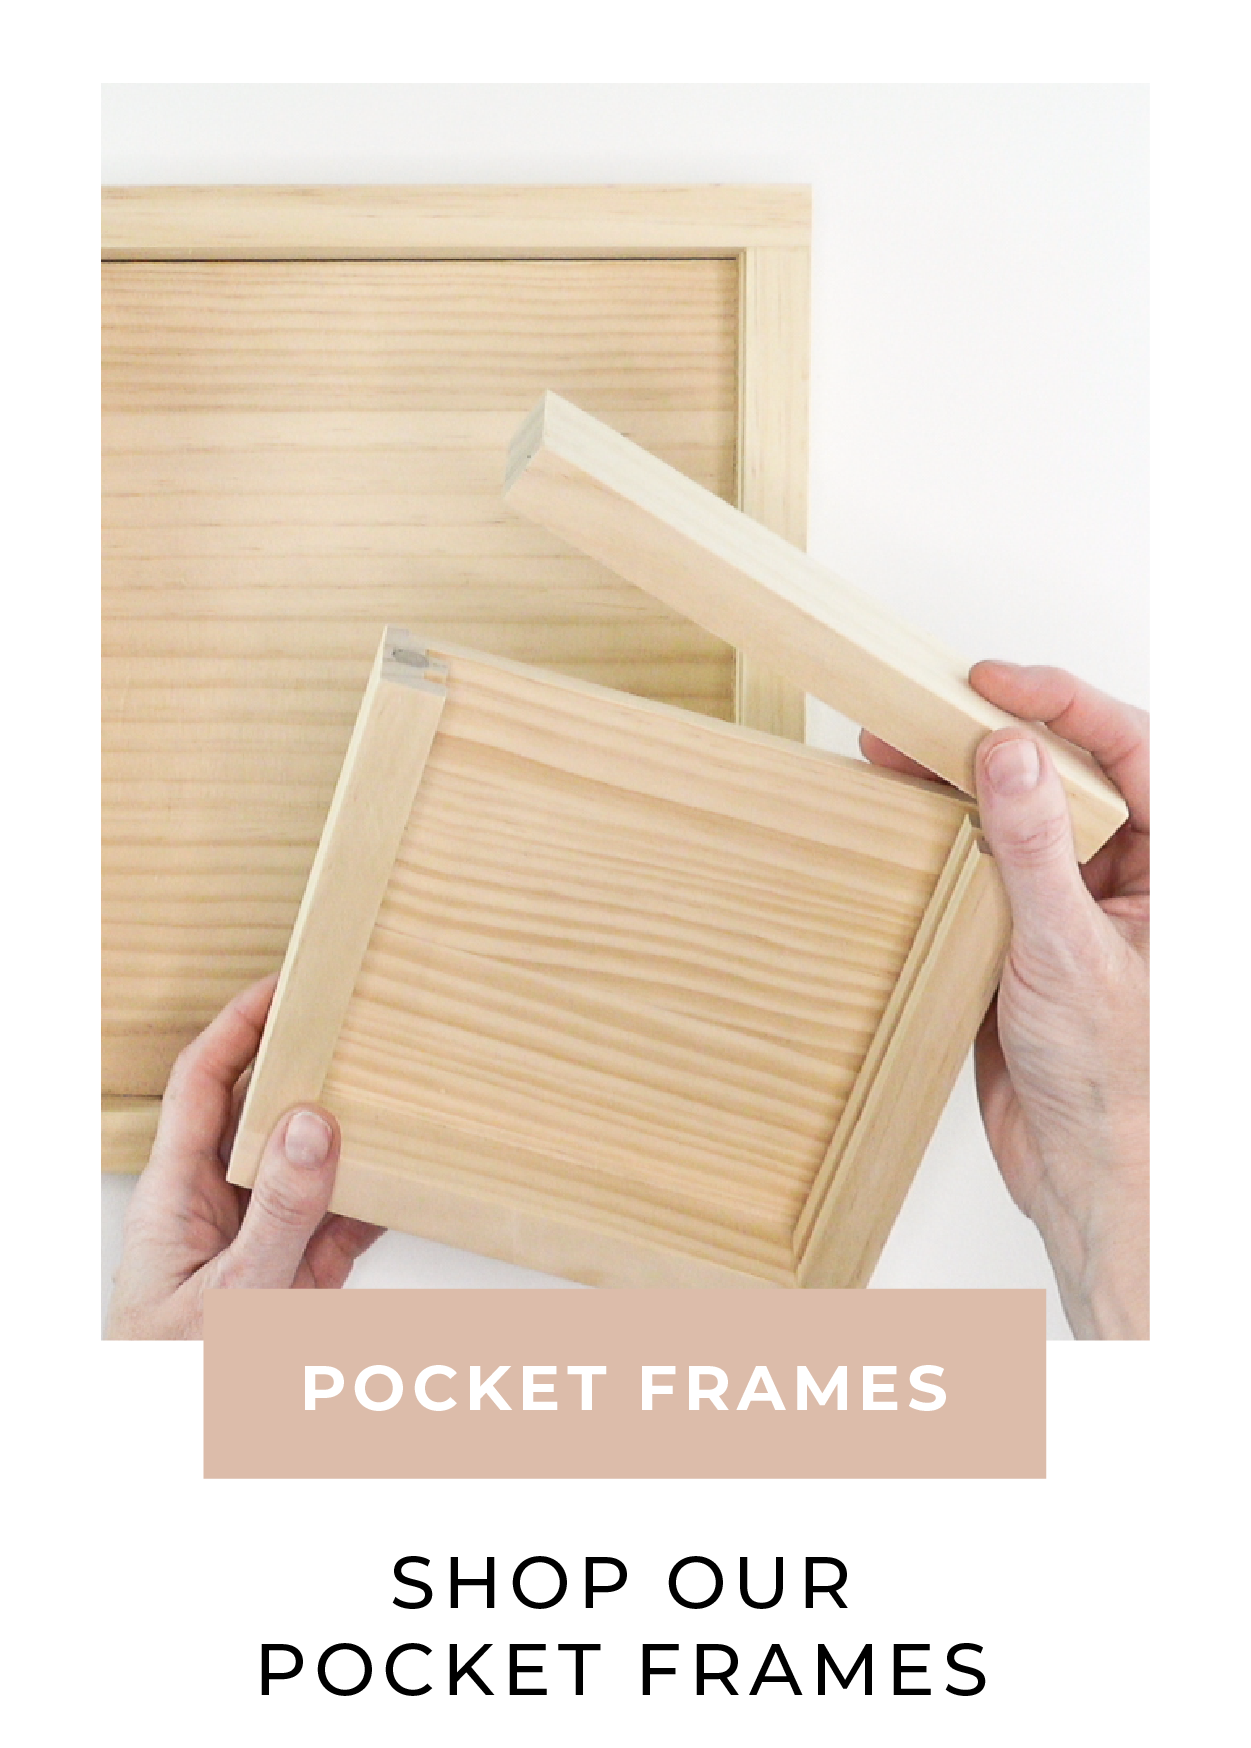 Shop Pocket Frames